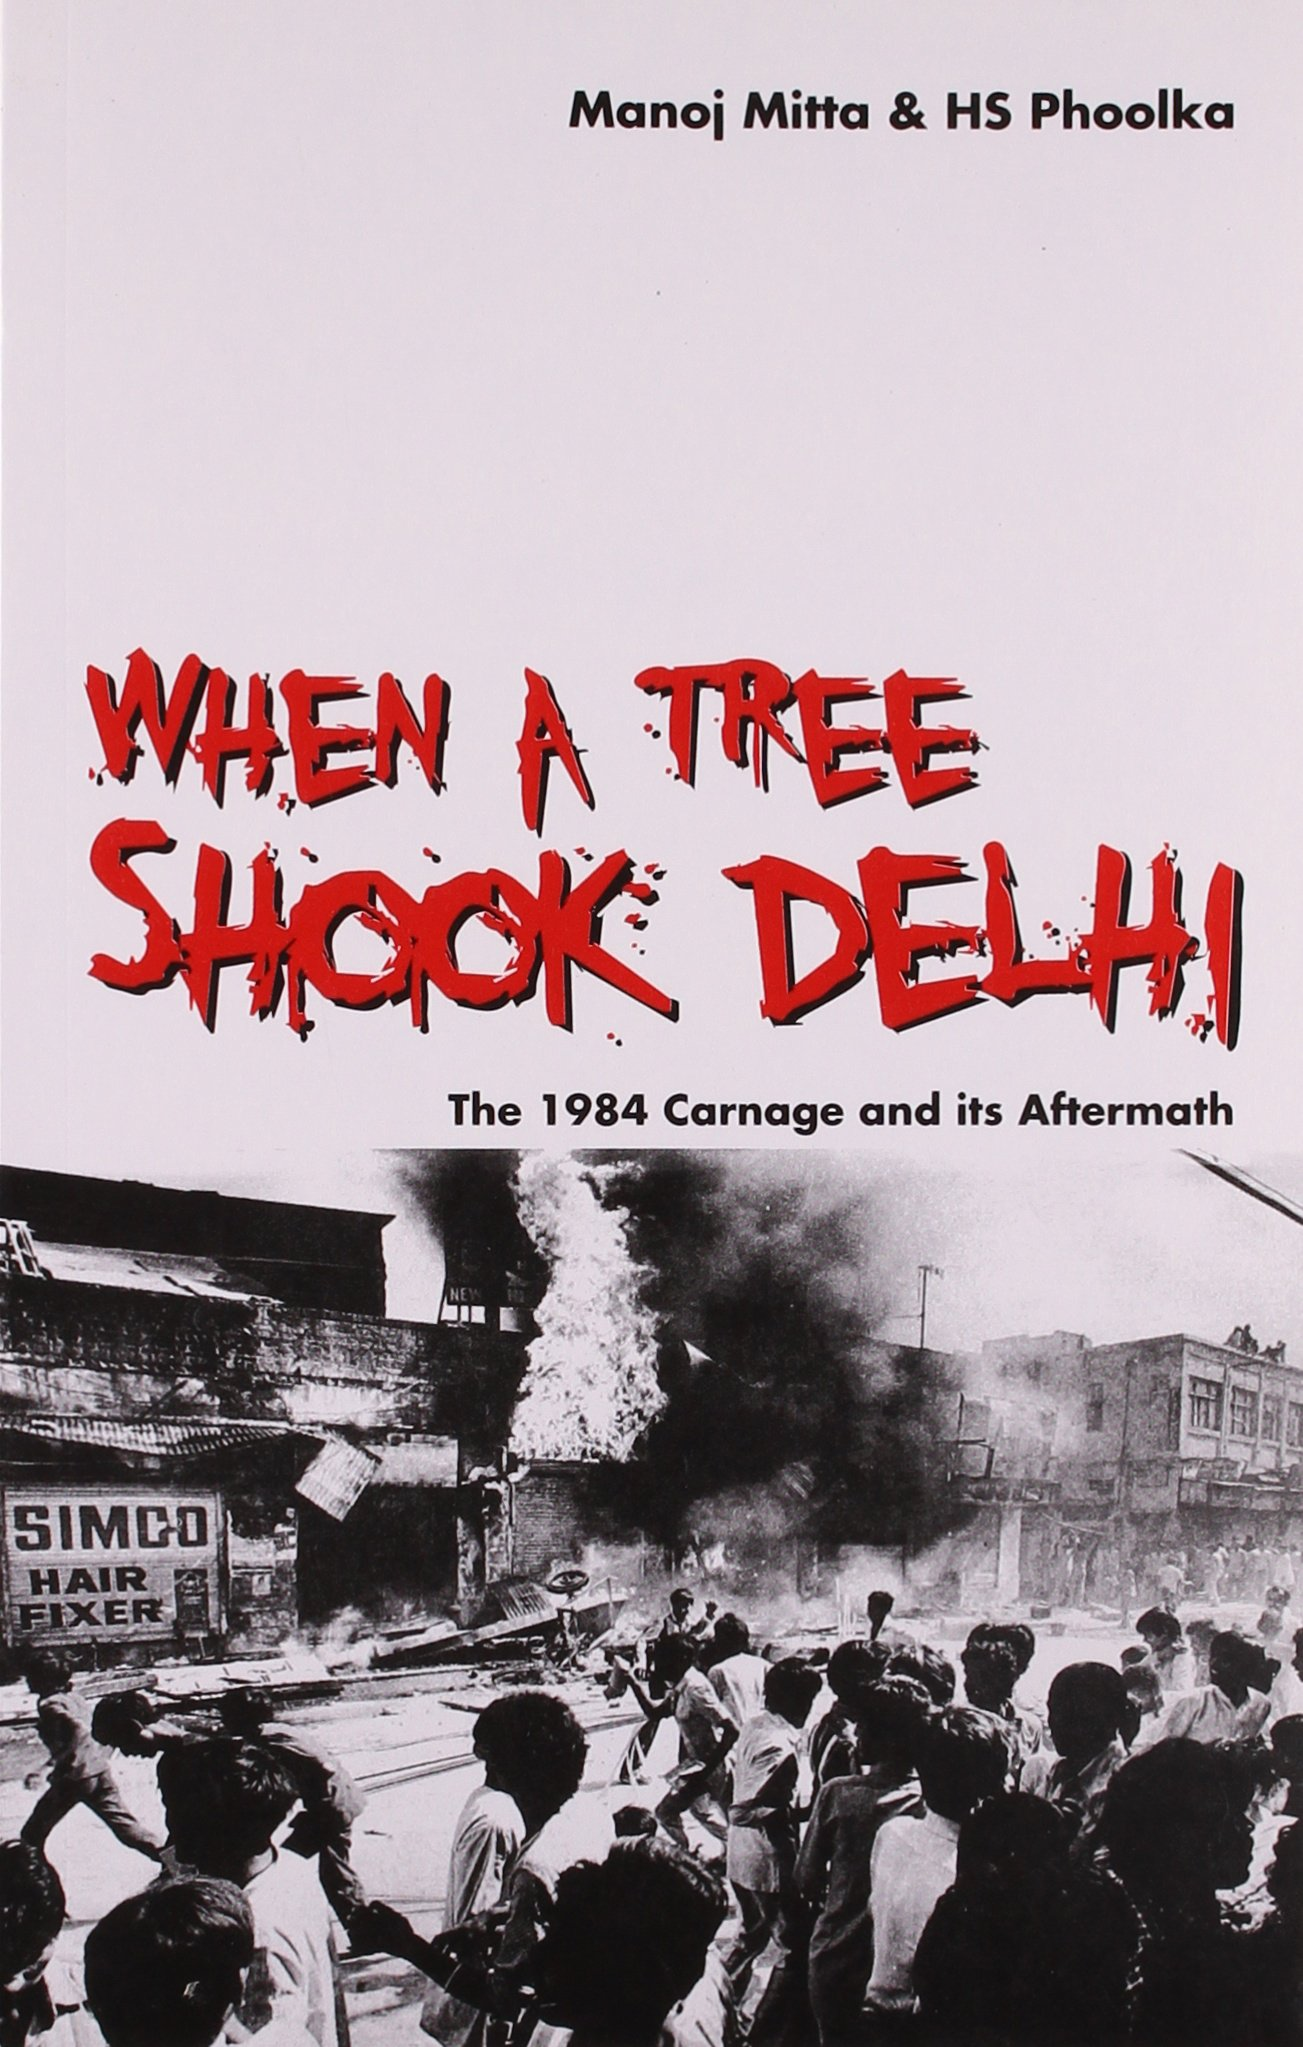 When a tree shook Delhi